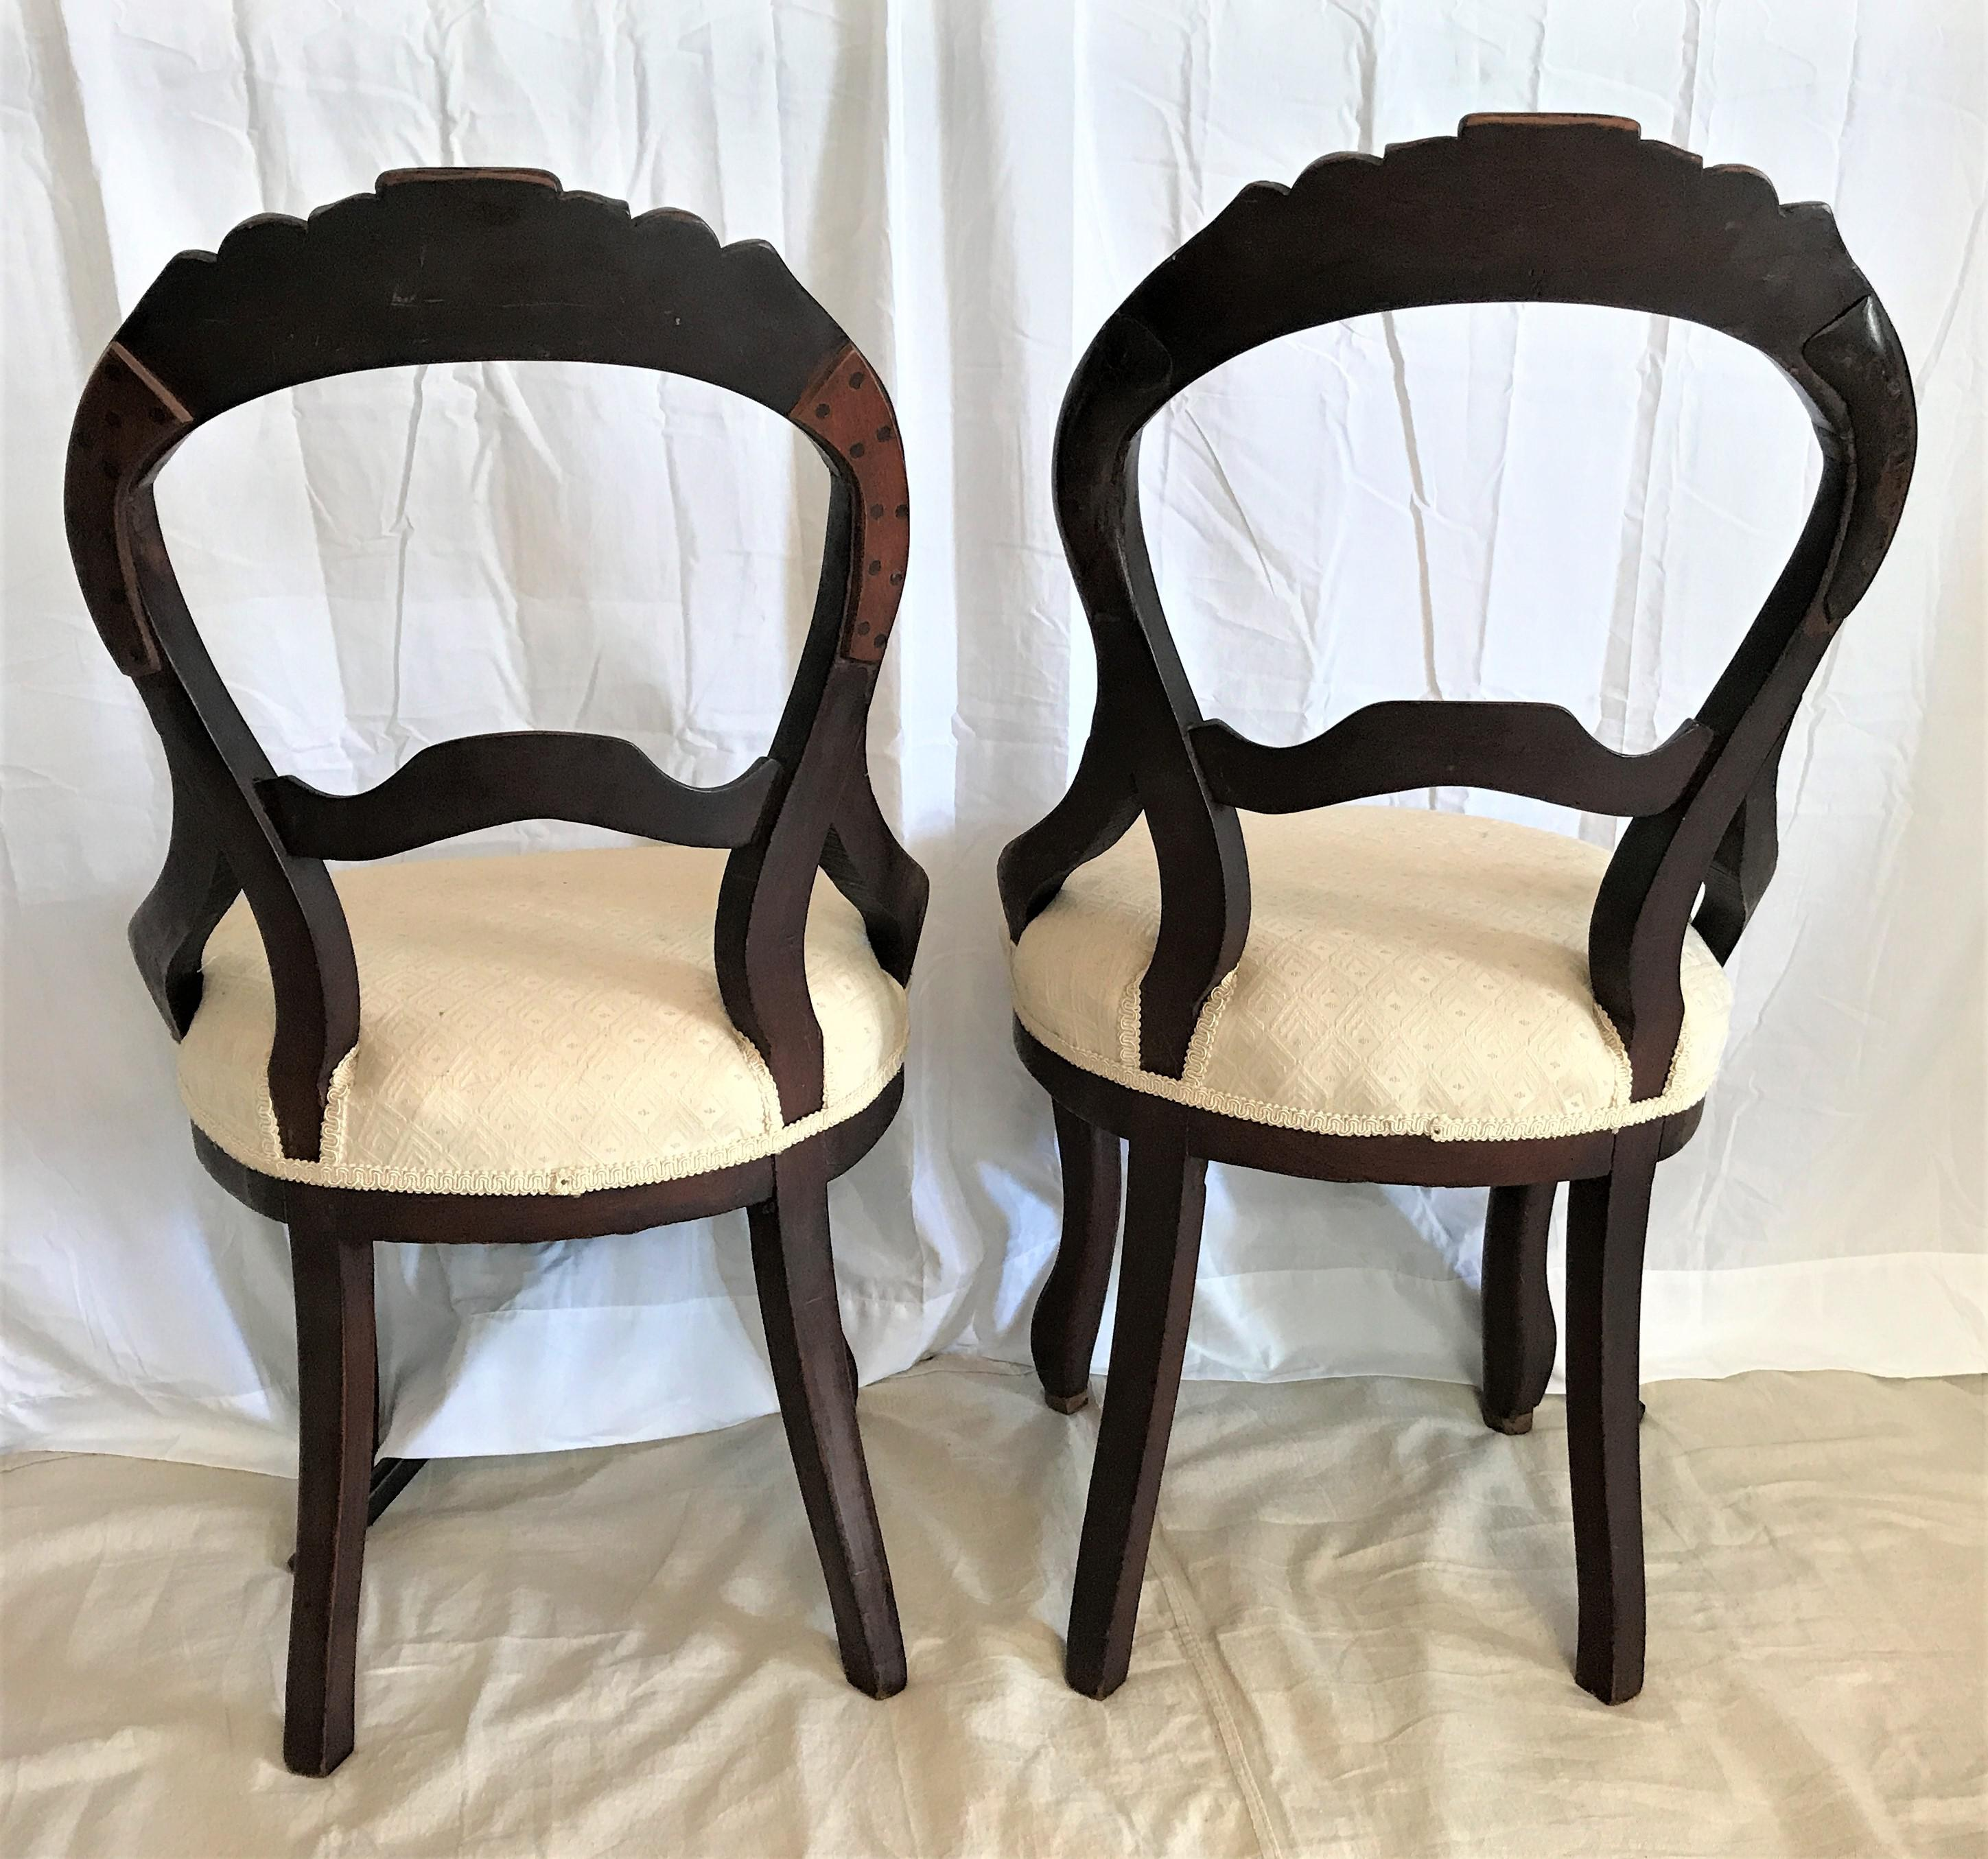 Awesome 1850 Louis XV Style Balloon Back Chairs   A Pair   Image 5 Of